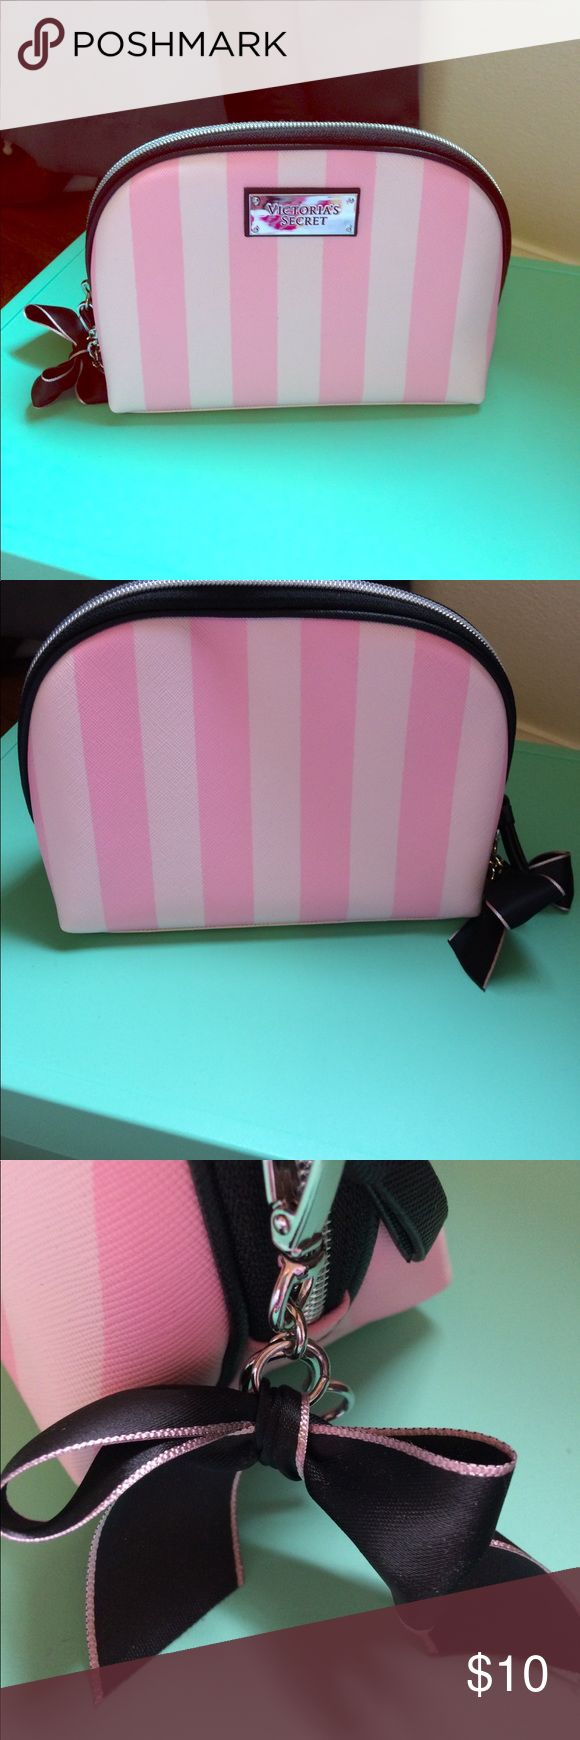 Victoria Secret Small Cosmetic Bag Victoria Secret Small Cosmetic Bag  Pink stripes with bow and heart ❤️ keychain  7in across x 5in Tall Great Condition Victoria's Secret Bags Cosmetic Bags & Cases